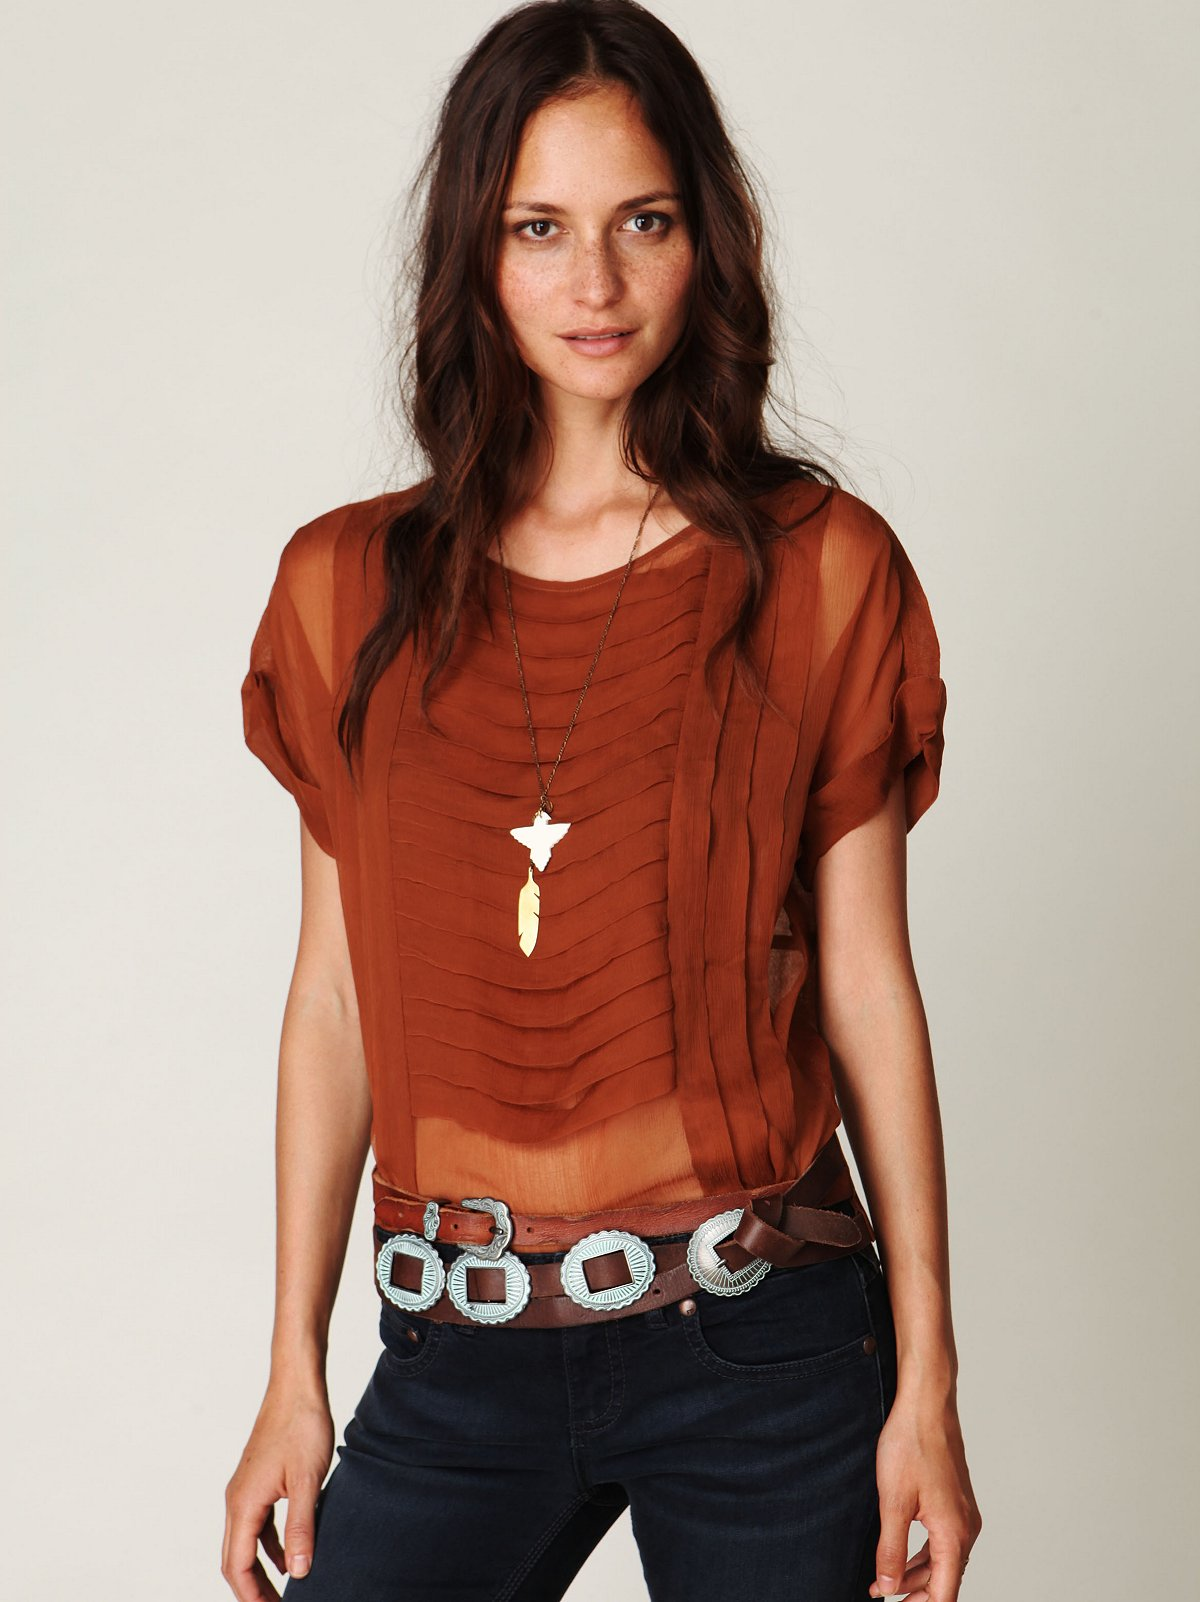 Wrapped Concho Waist Belt